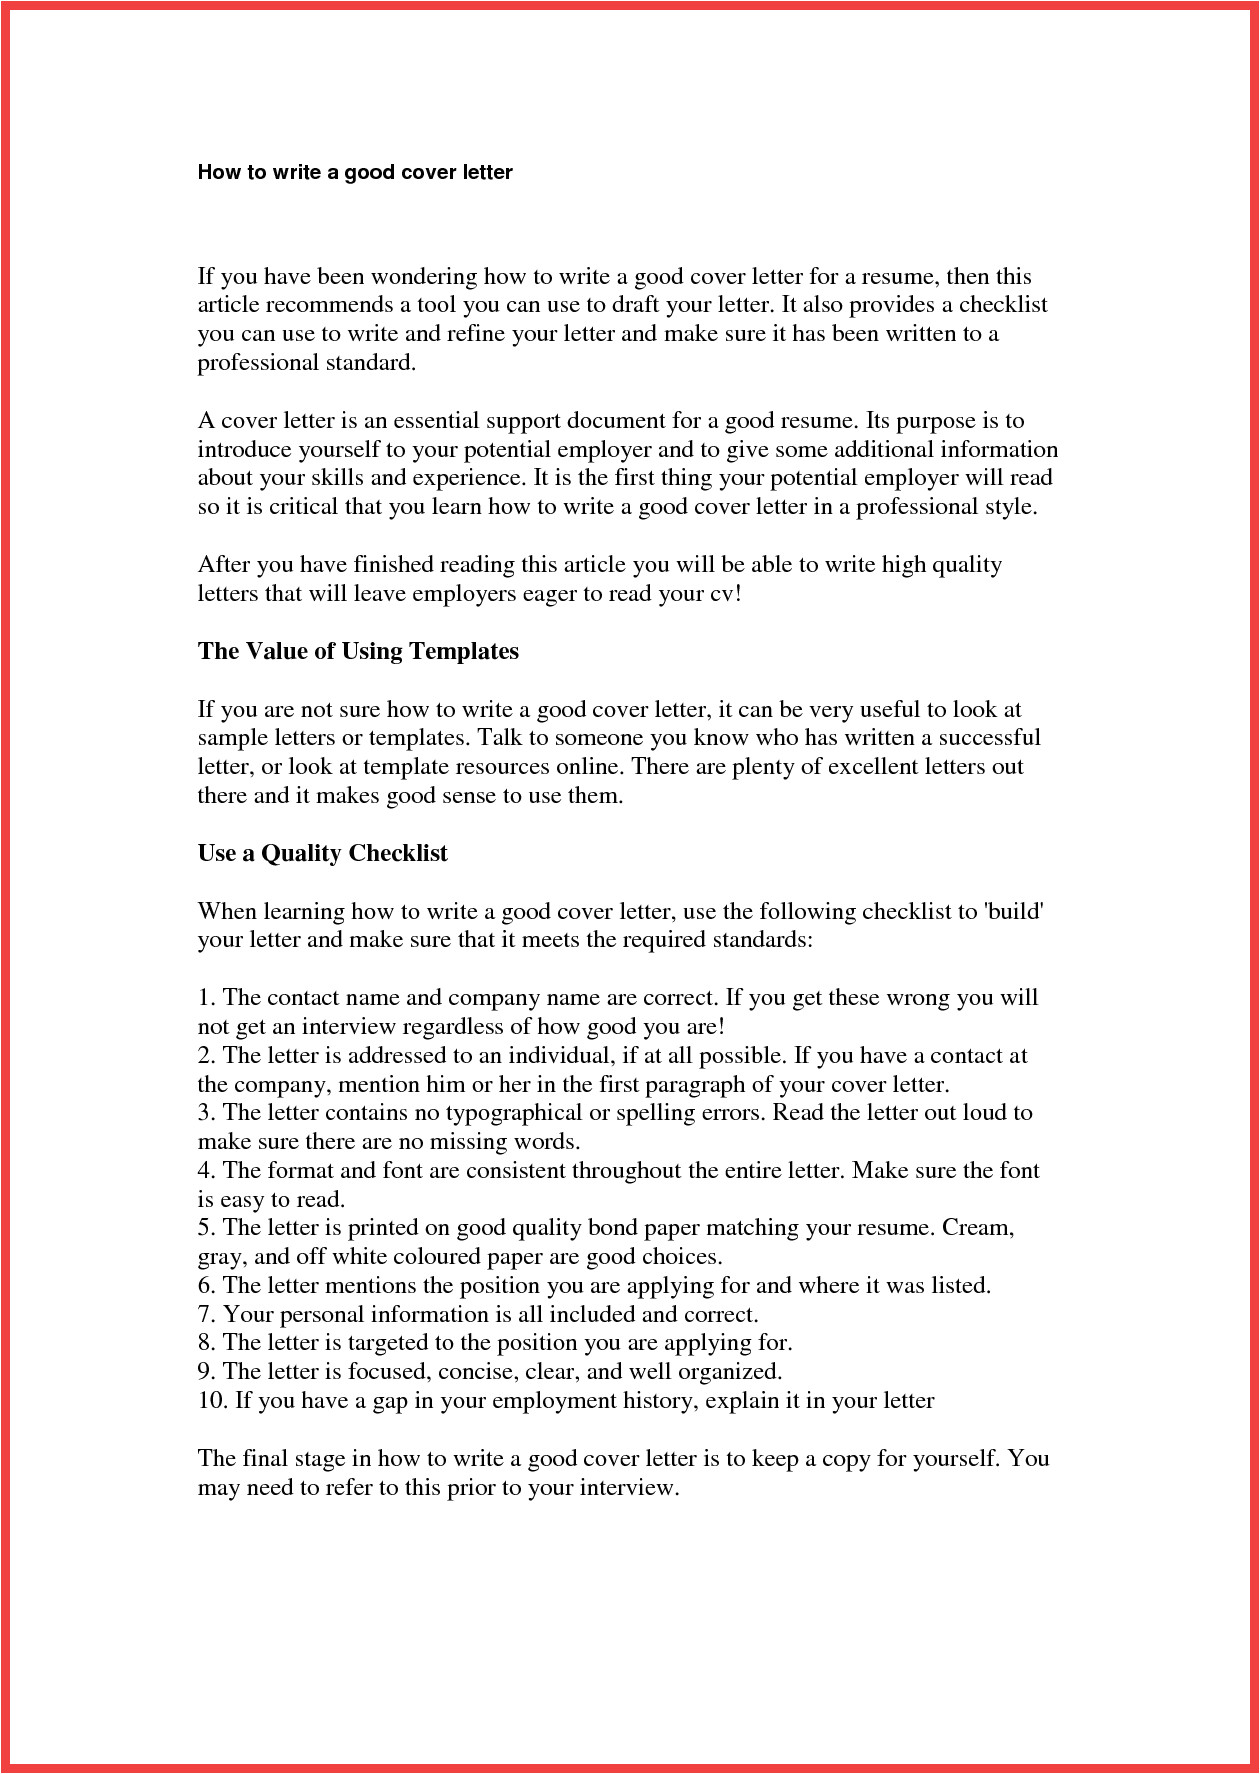 How to Creat A Cover Letter How to Create Cover Letter Memo Example